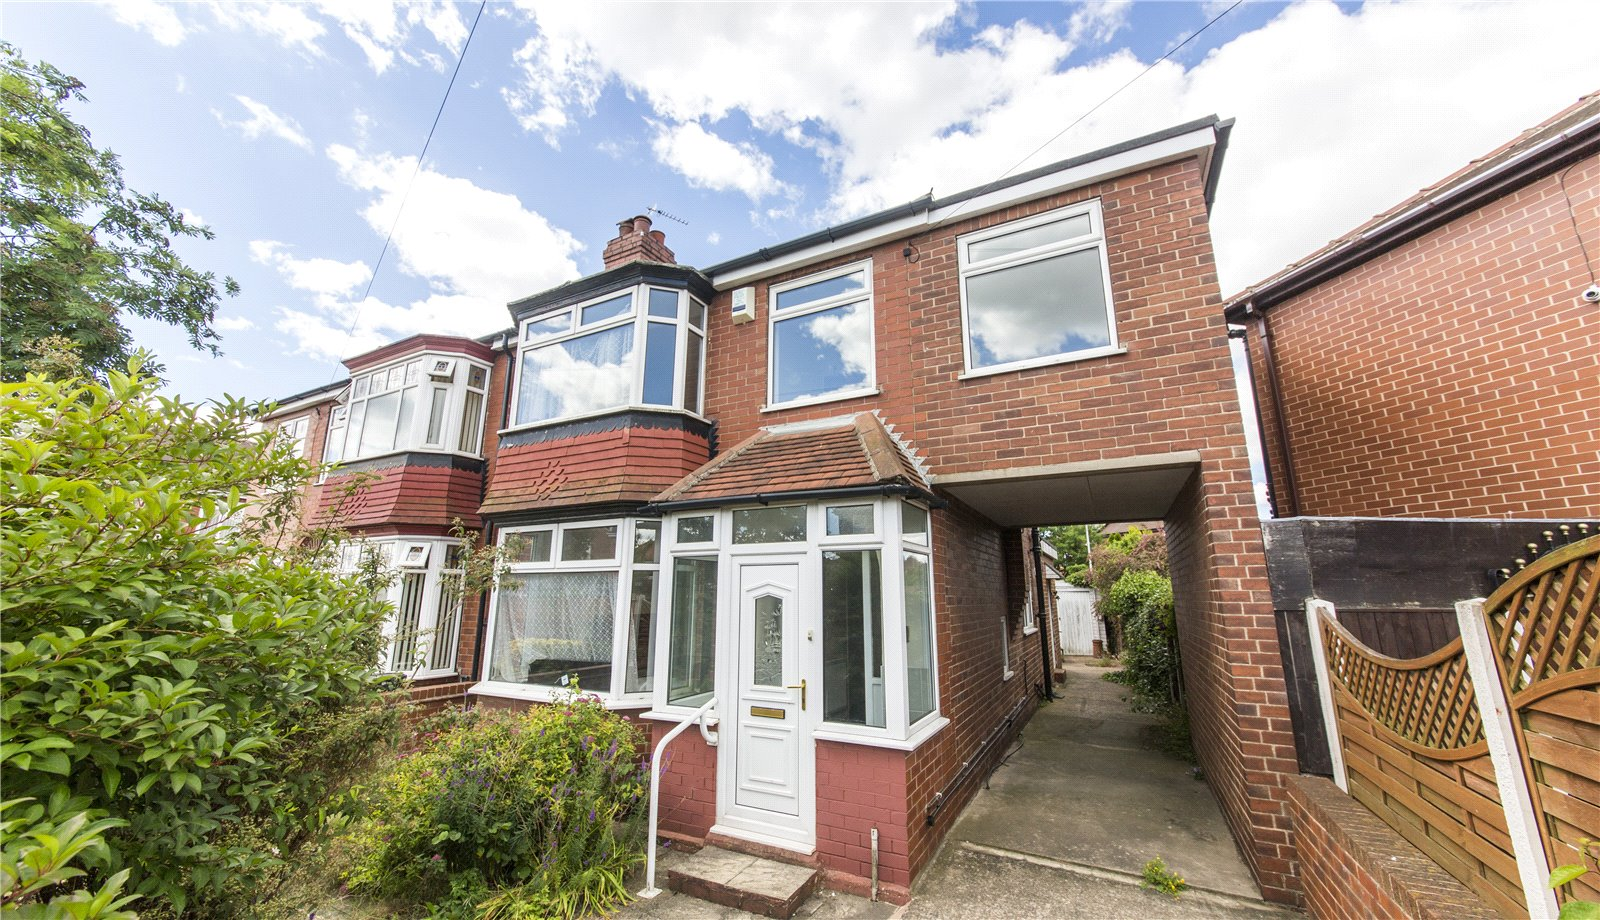 Properties for sale in Doncaster: Five of the best on the market now